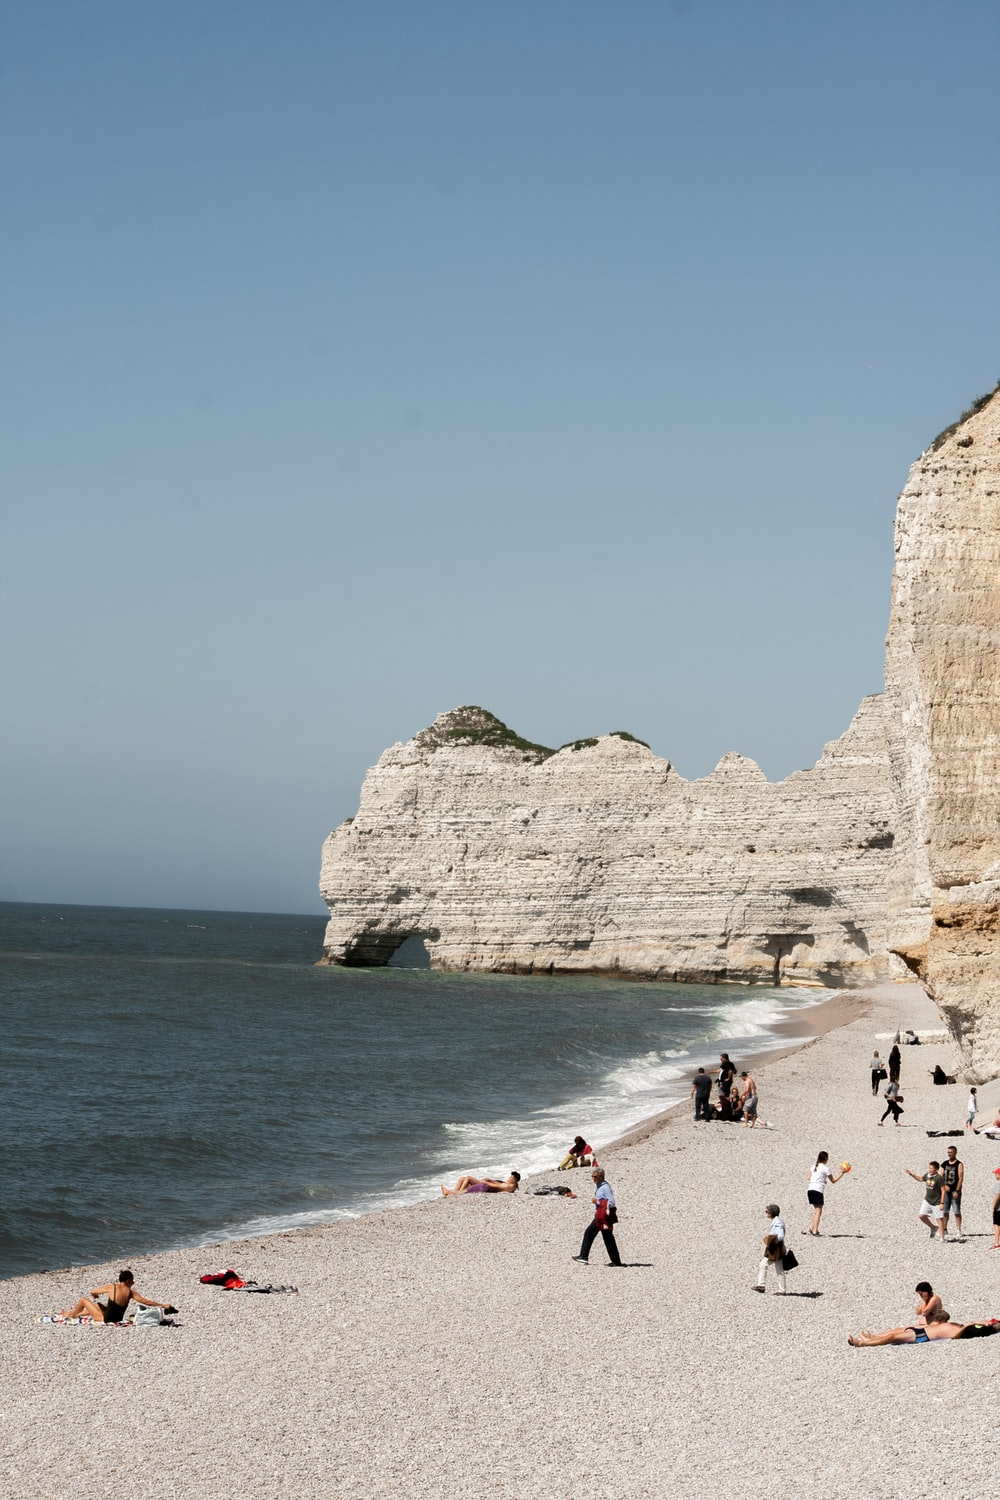 people on seashore near rock formation during daytime